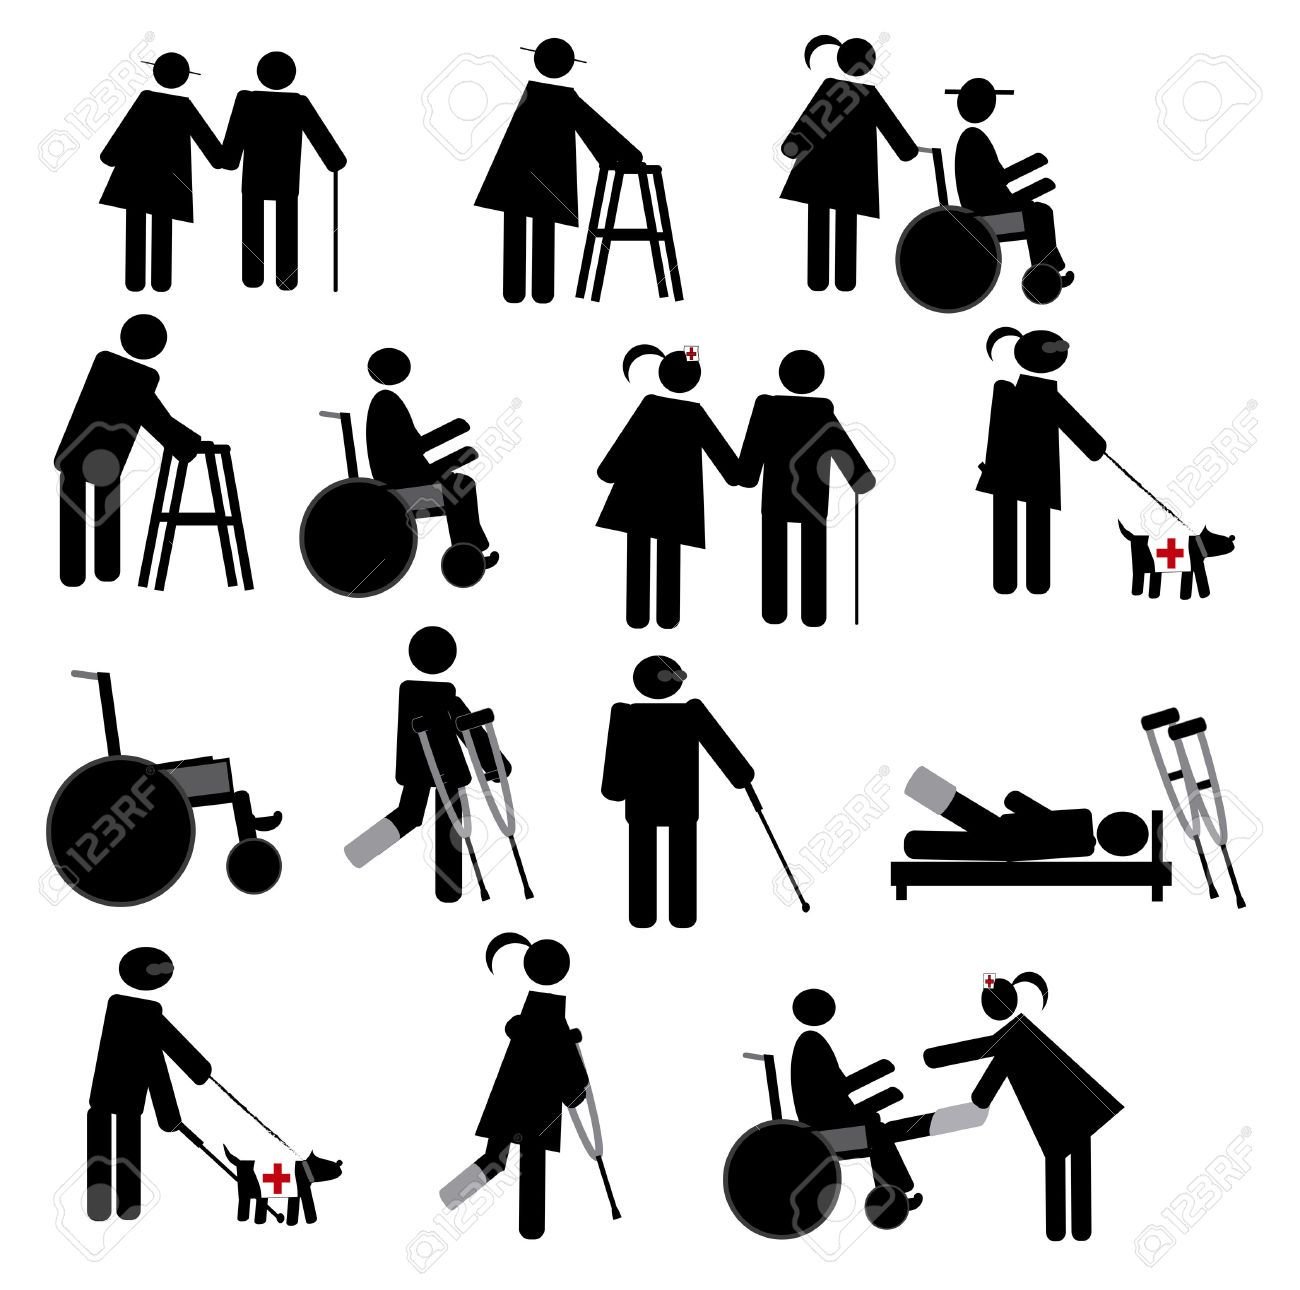 Stock Vector Icon set, Stick figure drawing, Technical